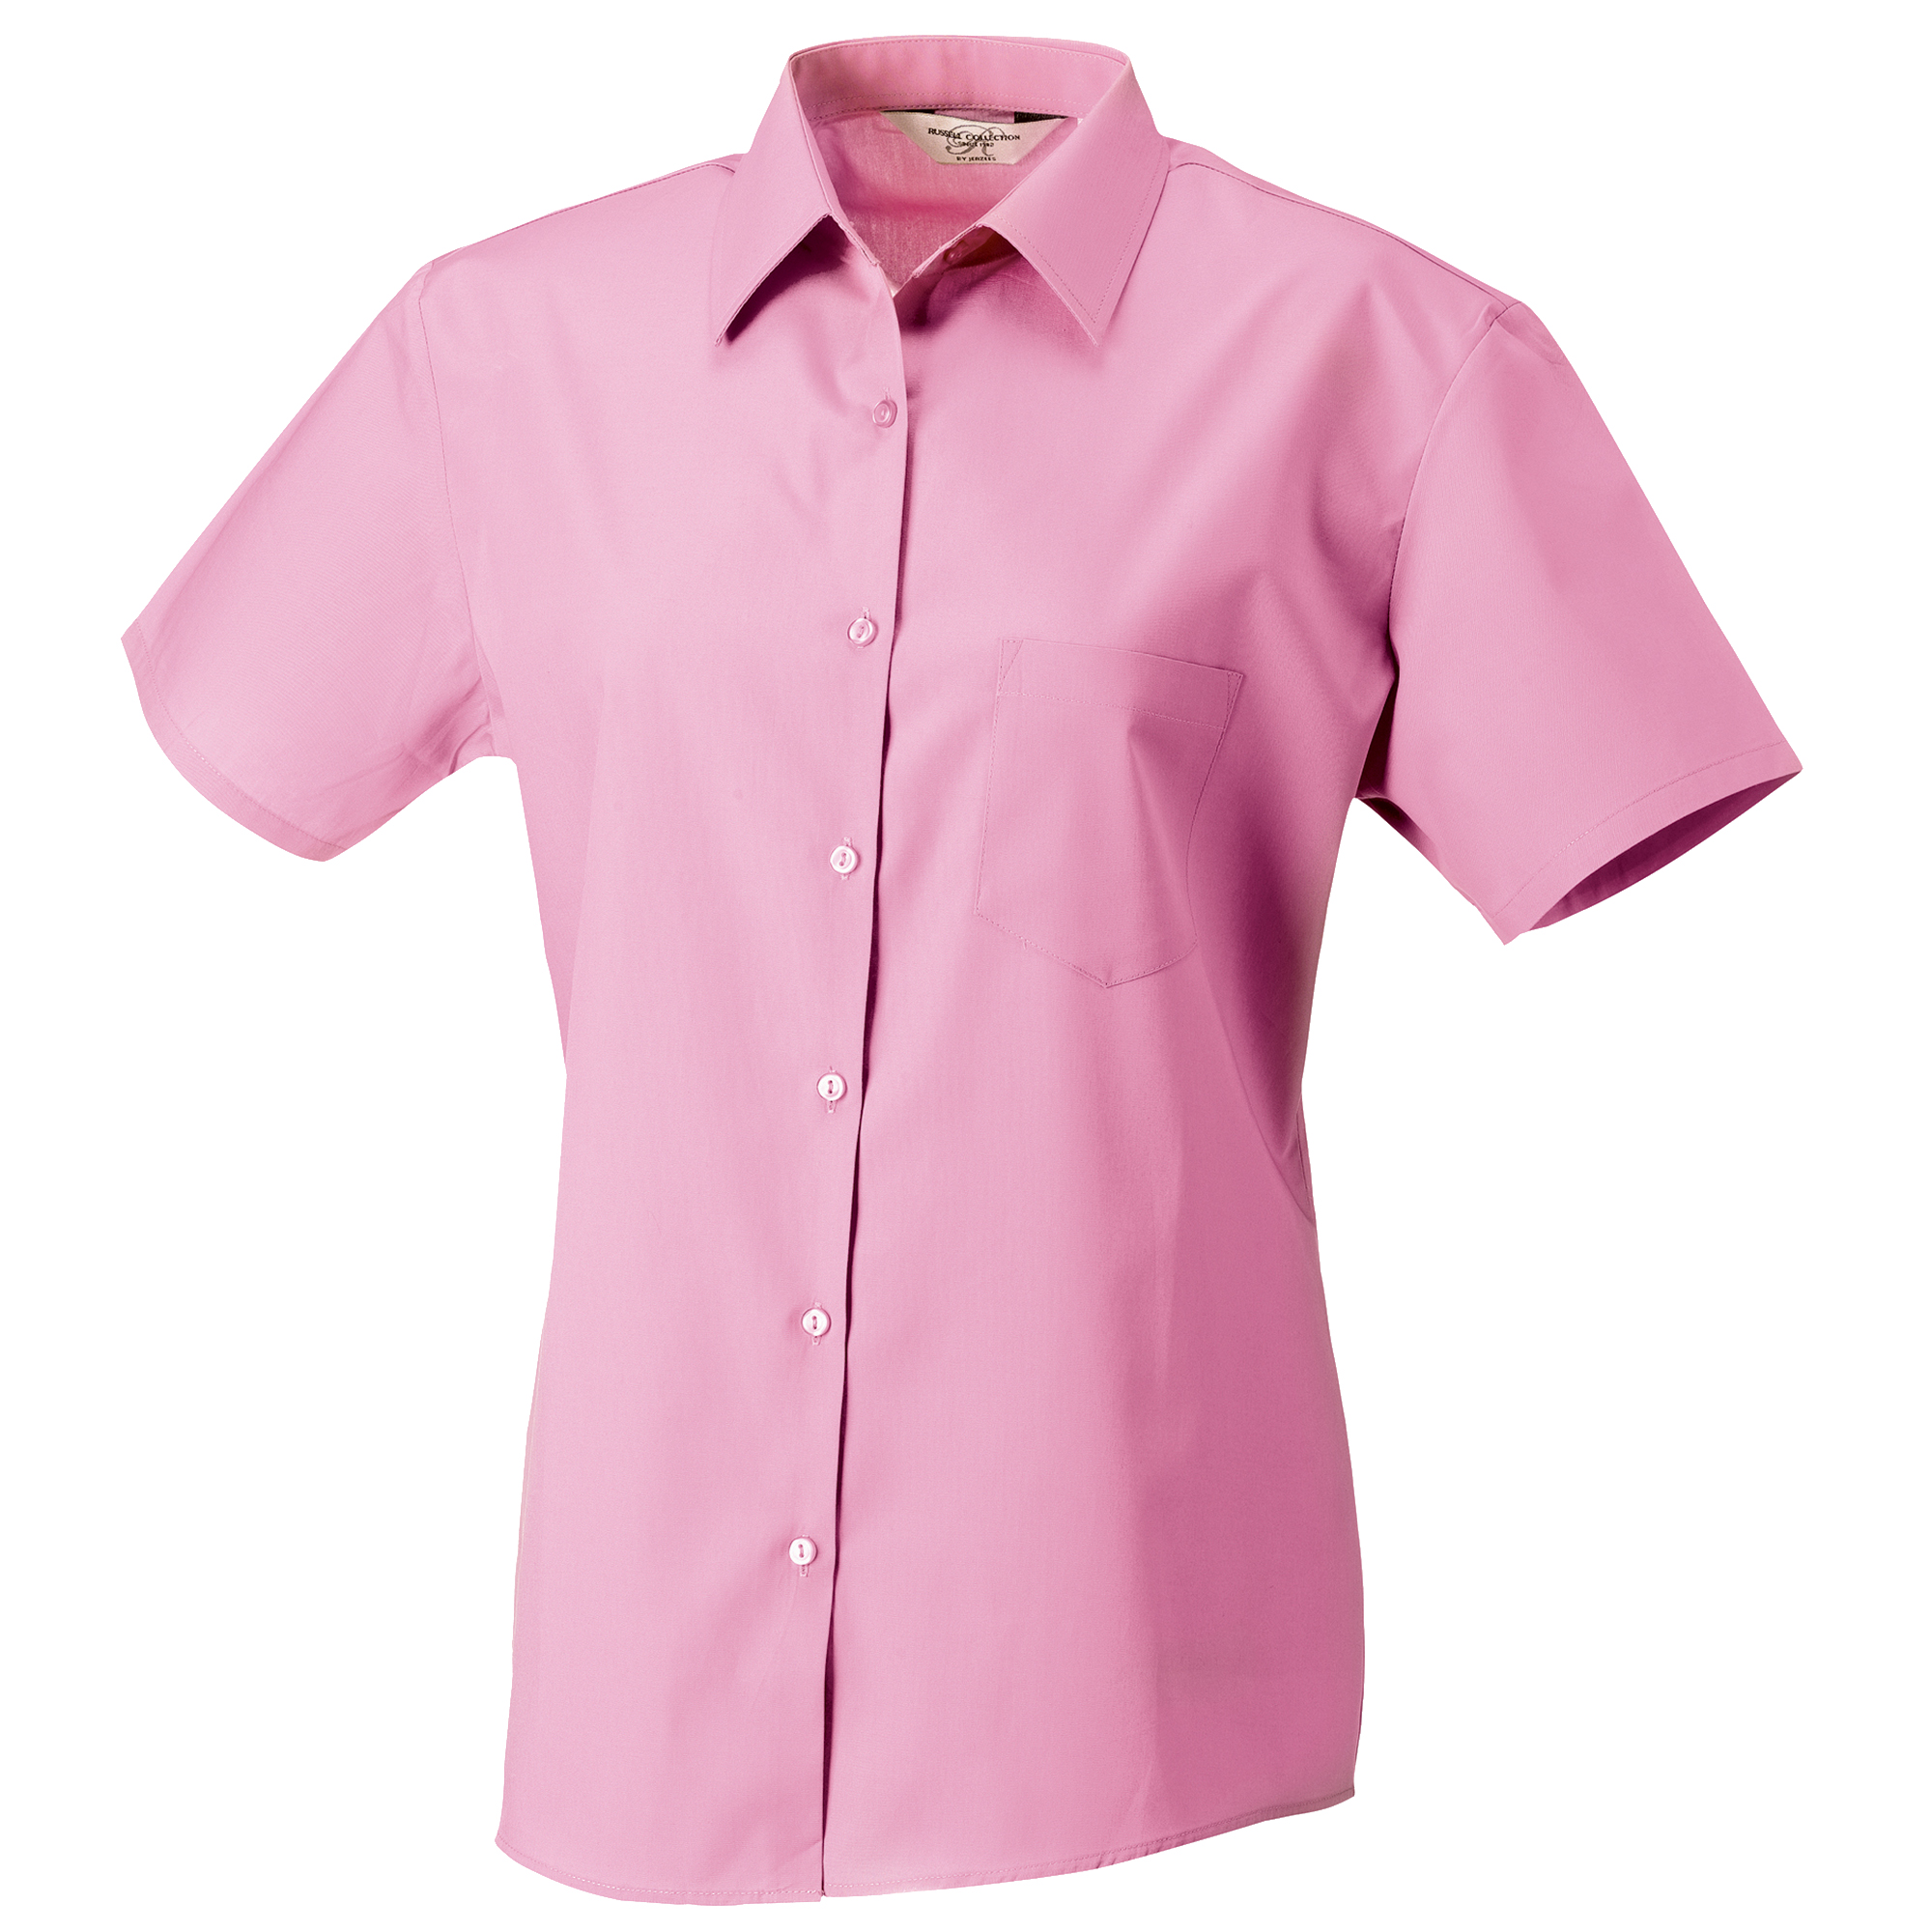 Russell Collection Womens/Ladies Short Sleeve Pure Cotton Easy Care Poplin Shirt (S) (Bright Pink)